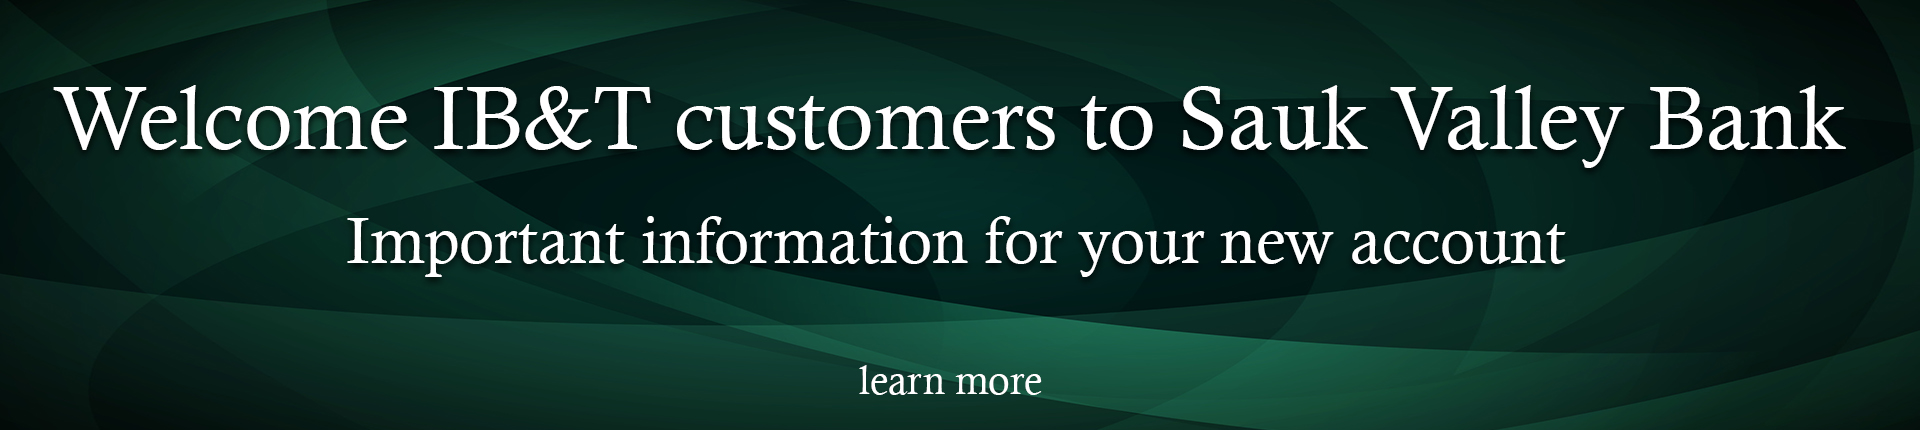 Account information for your new account